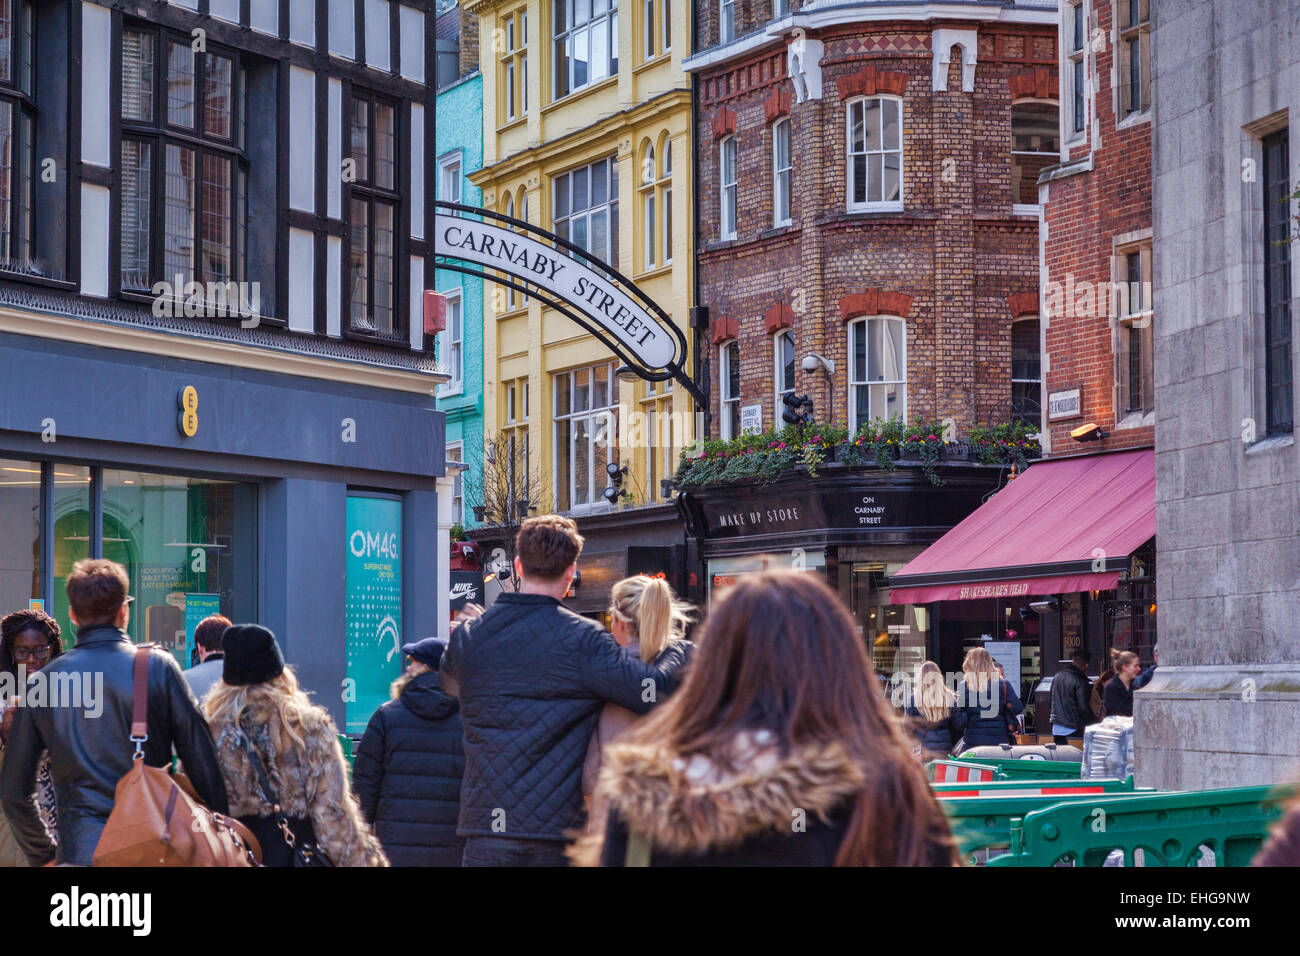 Crowds heading into Carnaby Street, London, England. - Stock Image